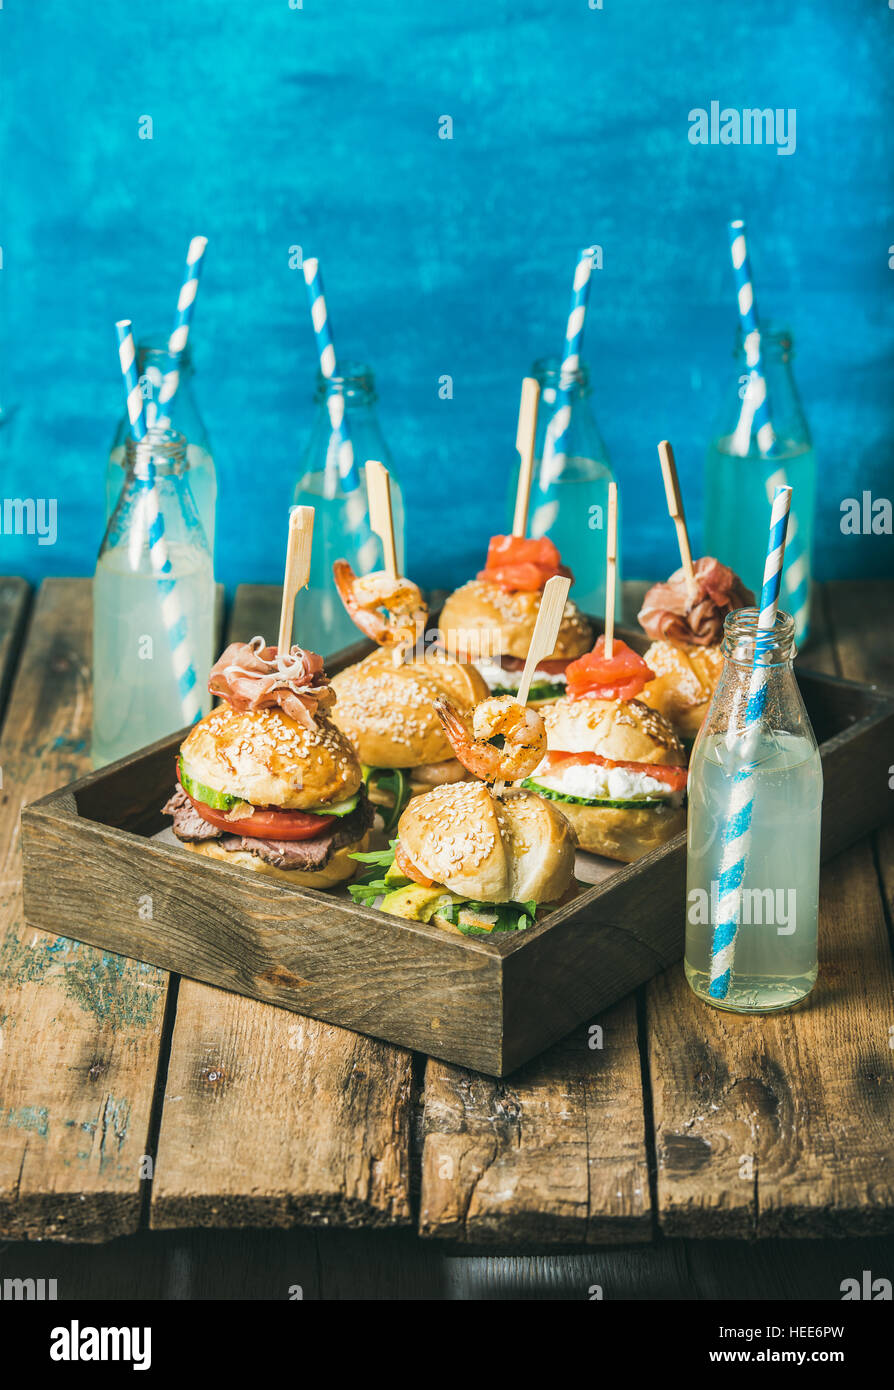 Different burgers with sticks in wooden tray and fresh lemonade - Stock Image